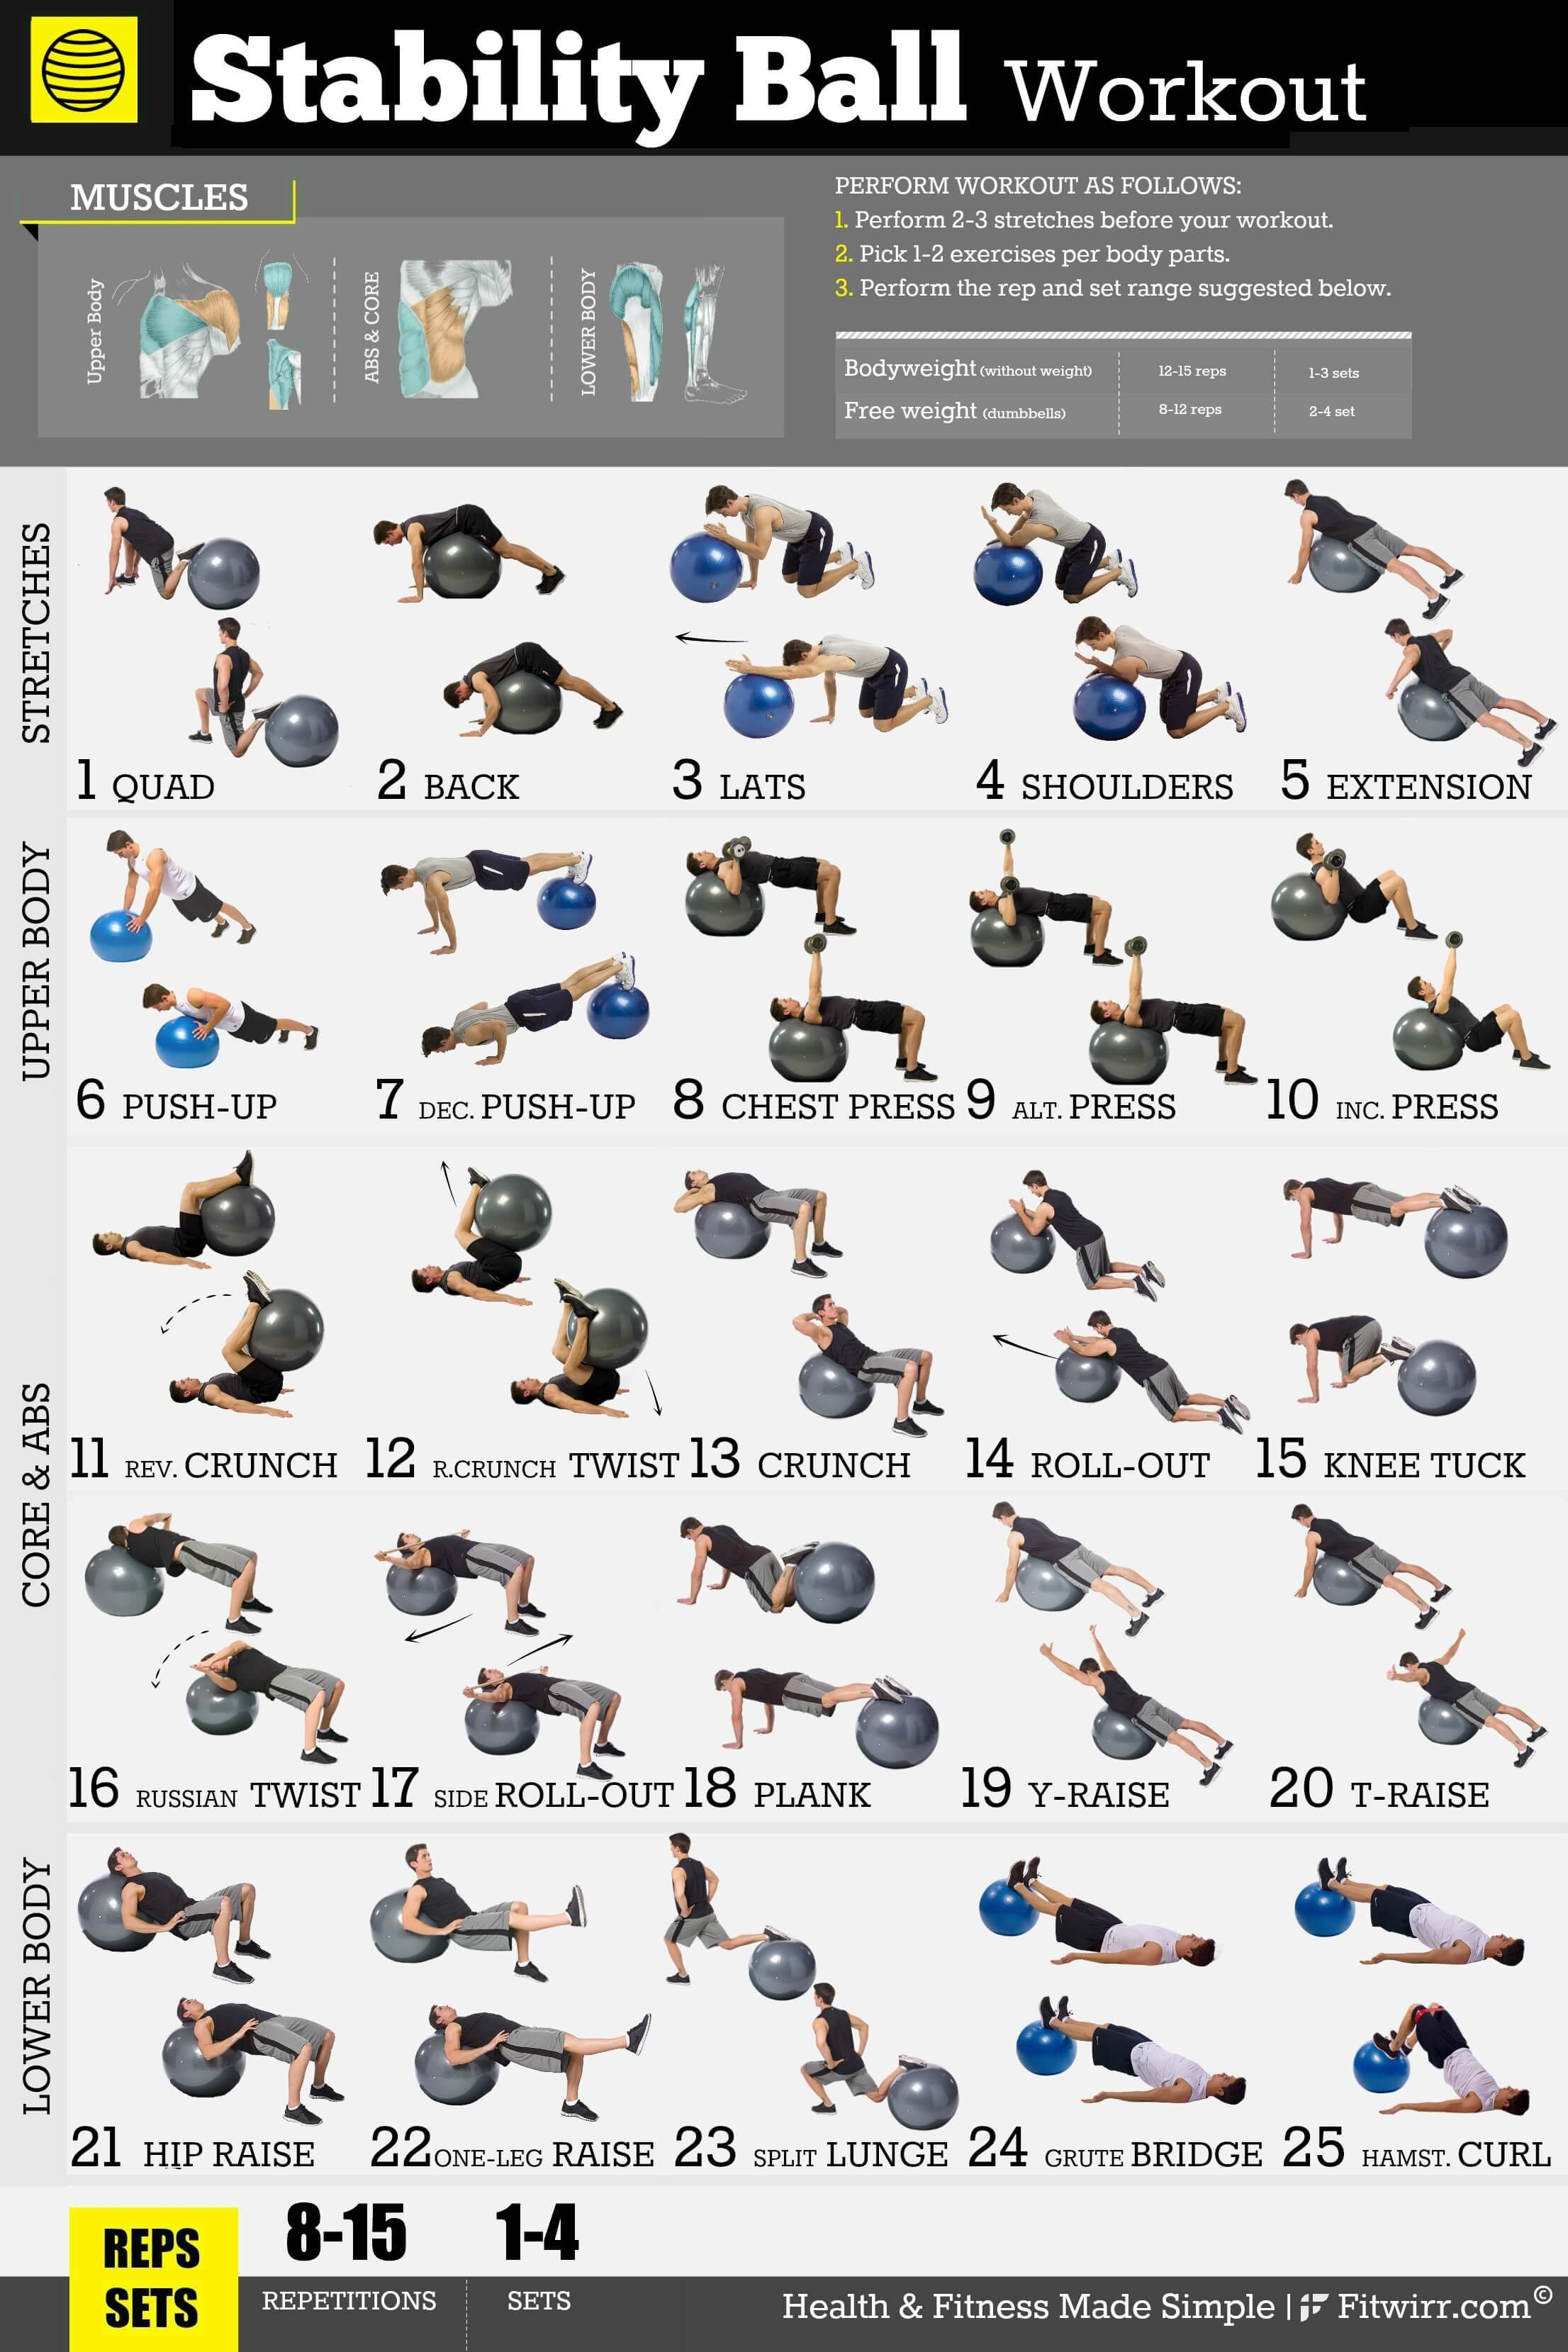 25 Exercise Ball Workouts Poster for a Total-Body Workout  8fa69fdf560c